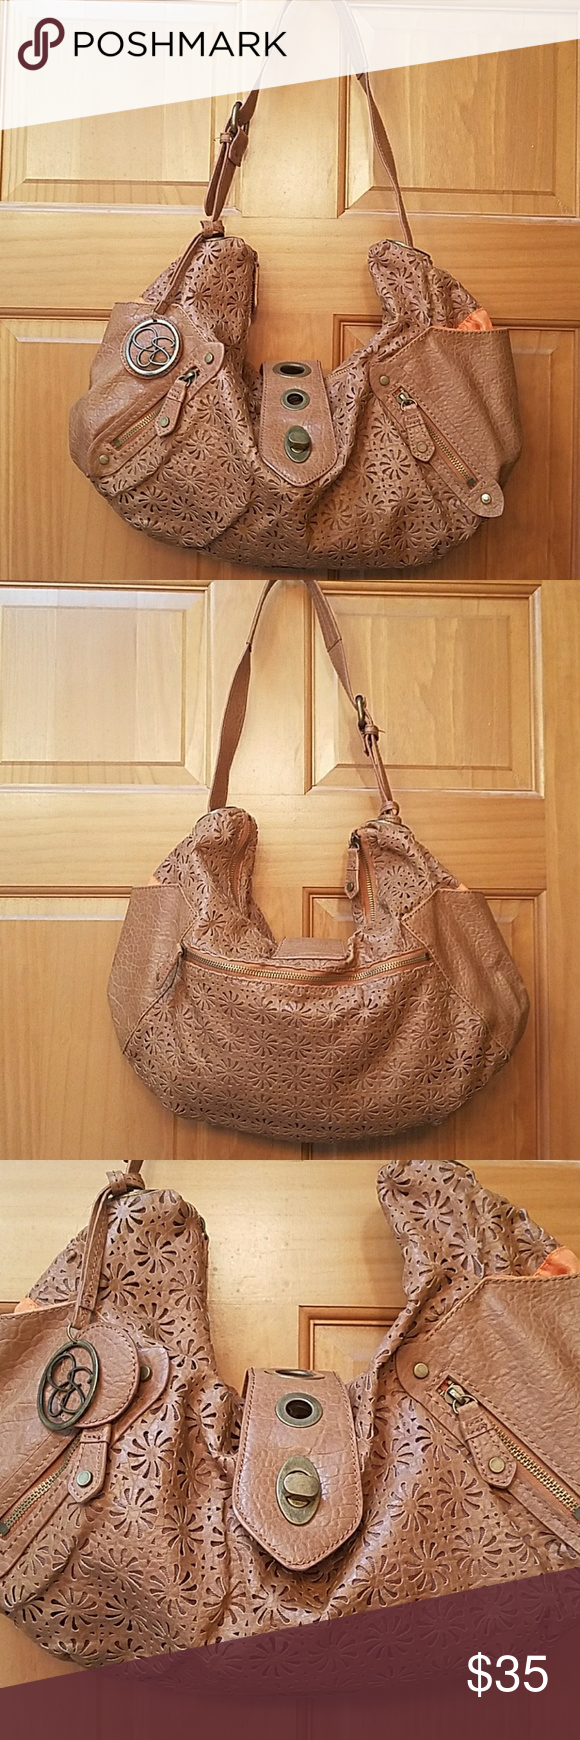 Price reduced!! Jessica Simpson tan purse. Super soft material and so cute. Tan flower pattern and orange liner. Lots of pockets.  Offers welcome. Jessica Simpson Bags Shoulder Bags